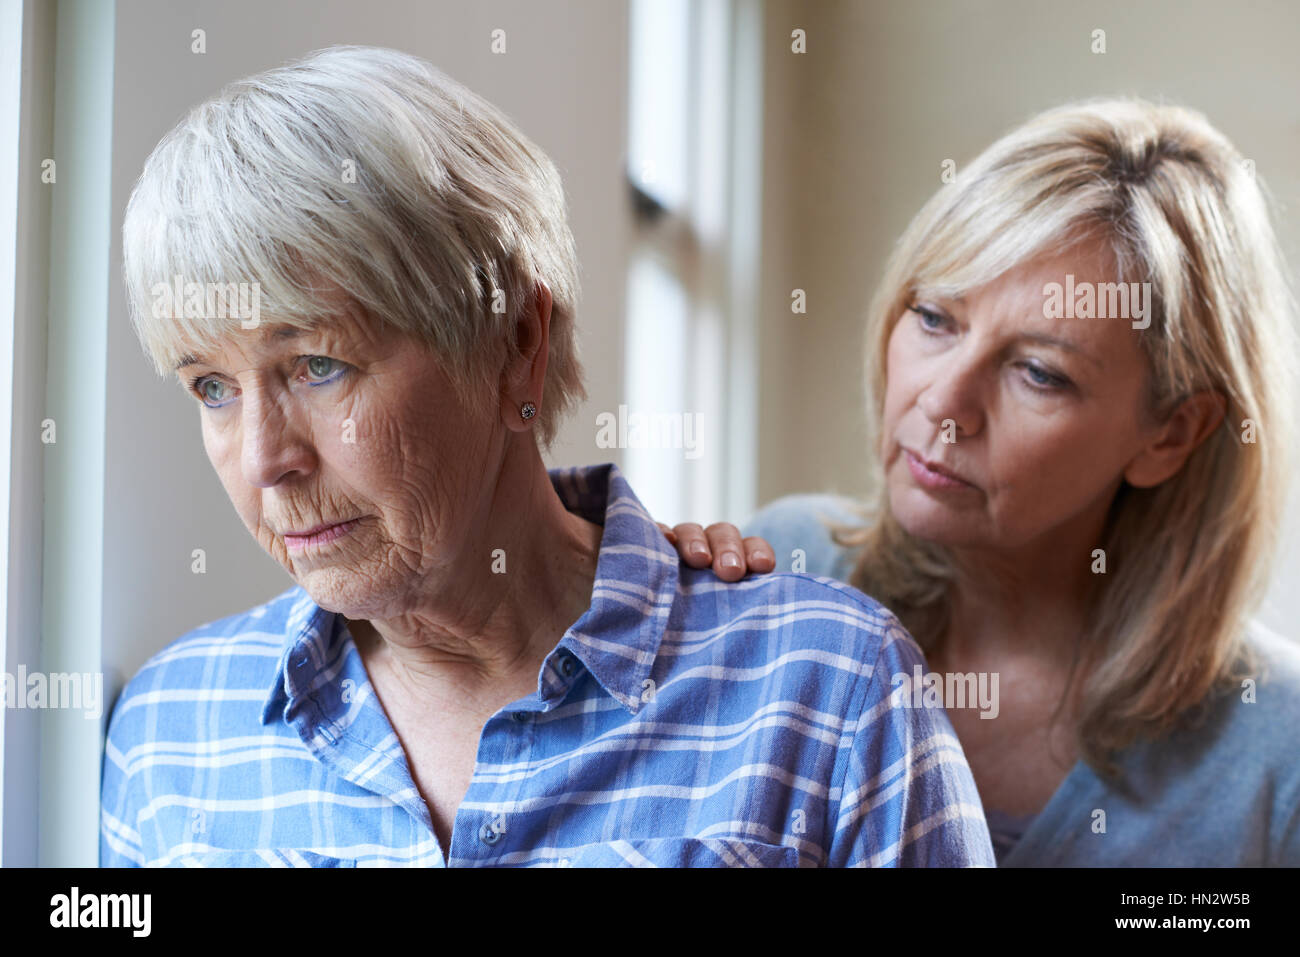 Serious Senior Woman With Adult Daughter At Home - Stock Image